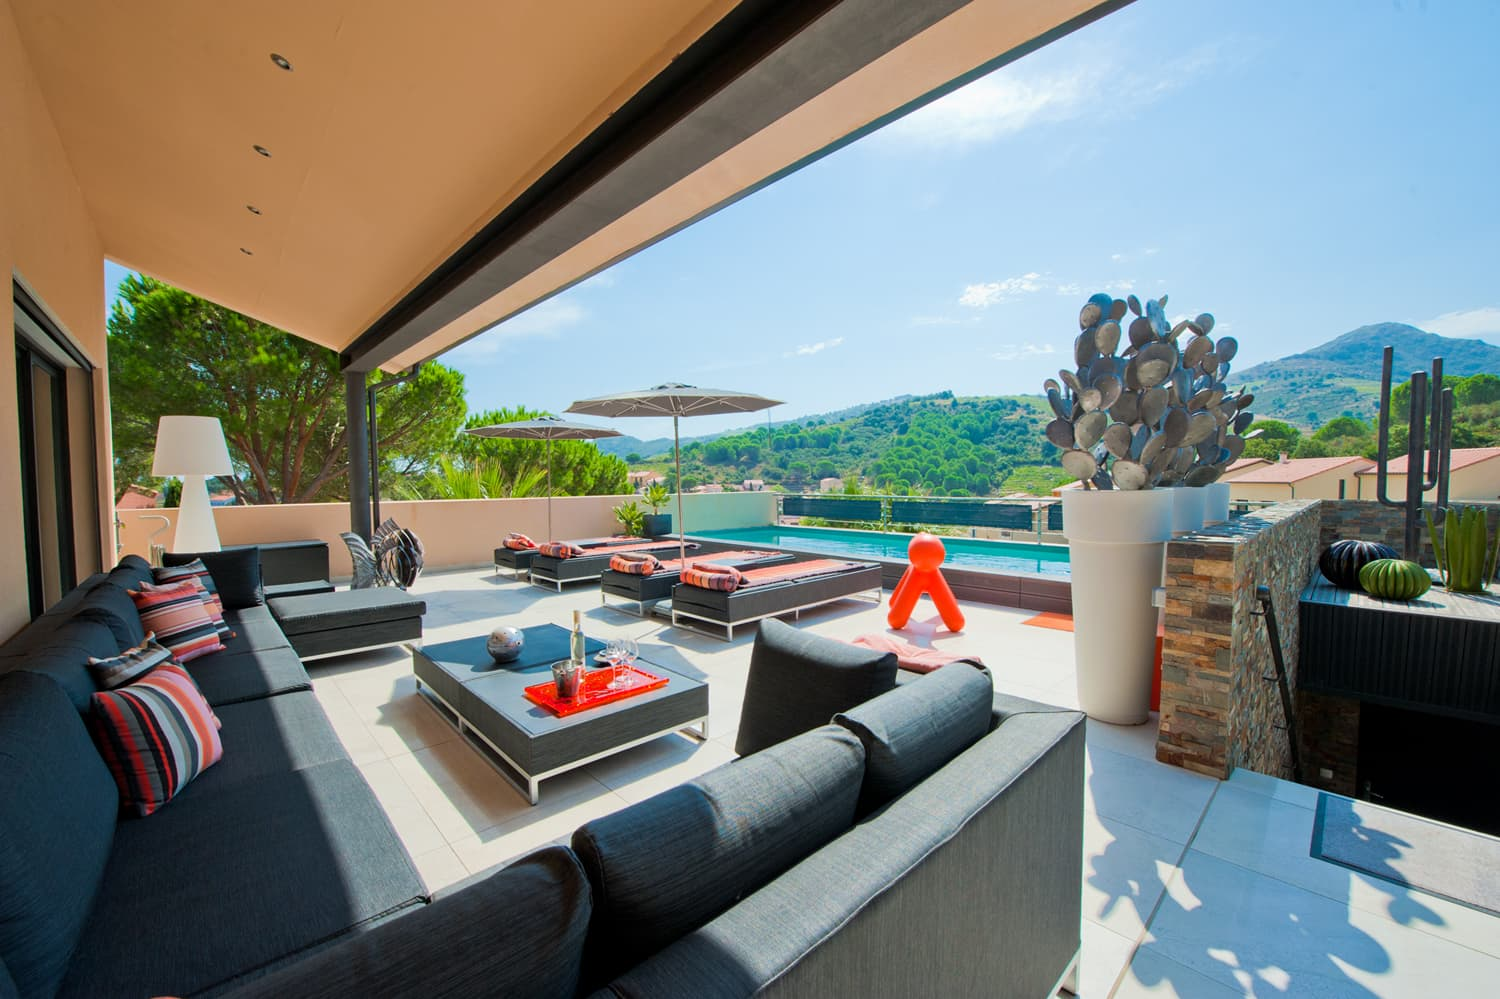 Terrace with private pool